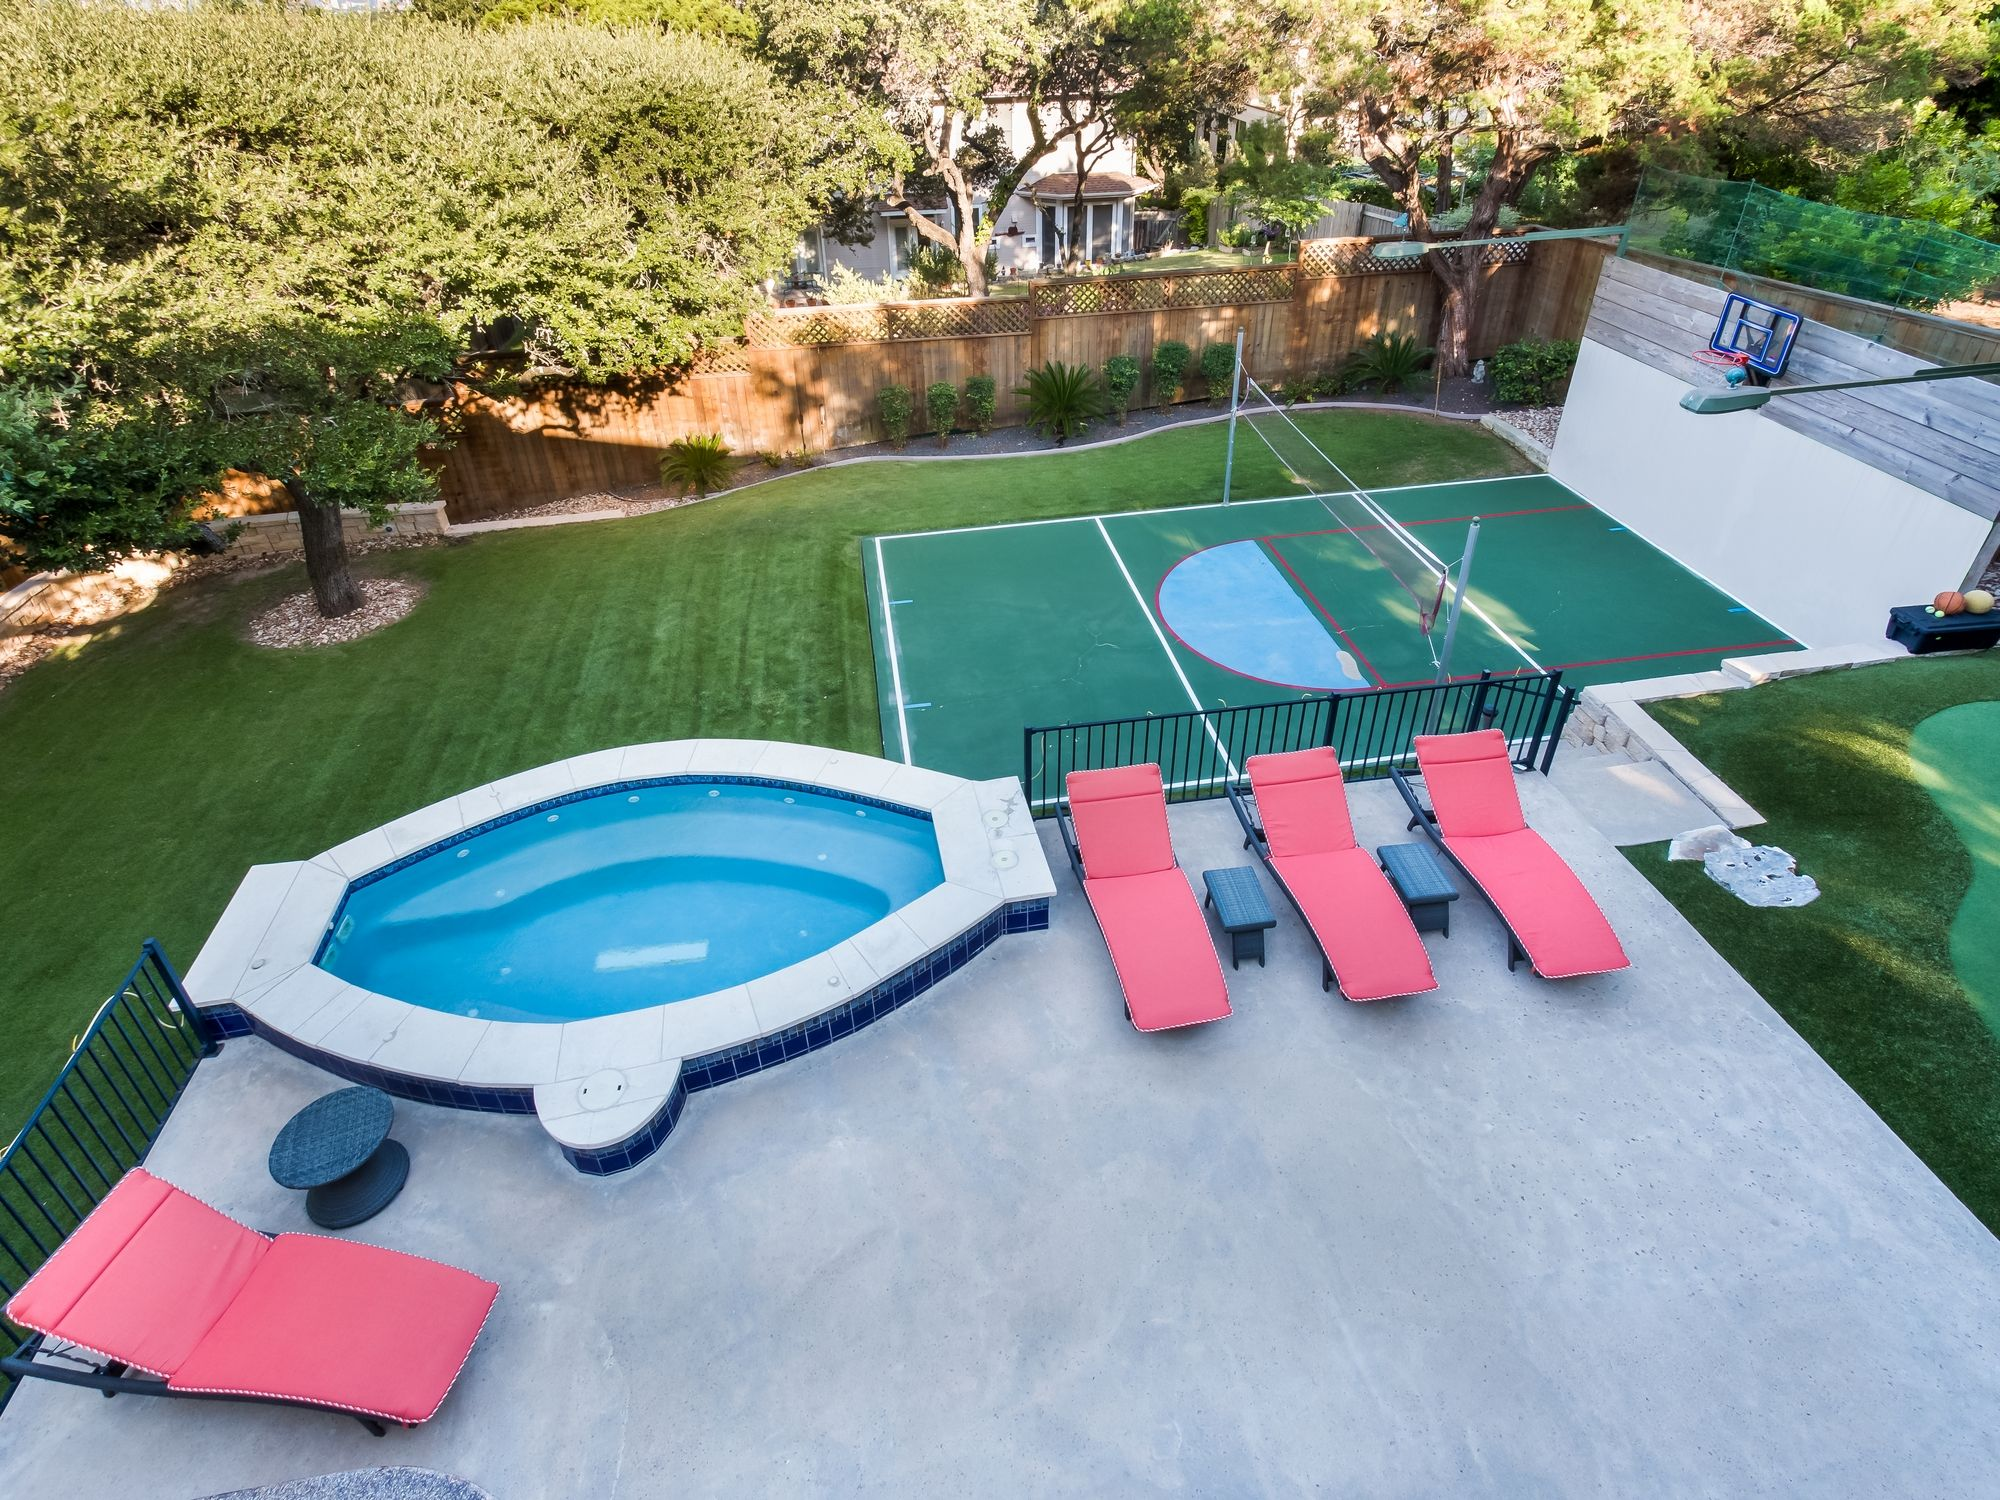 Wonderful Entertaining Home With Incredible Amenities Including A